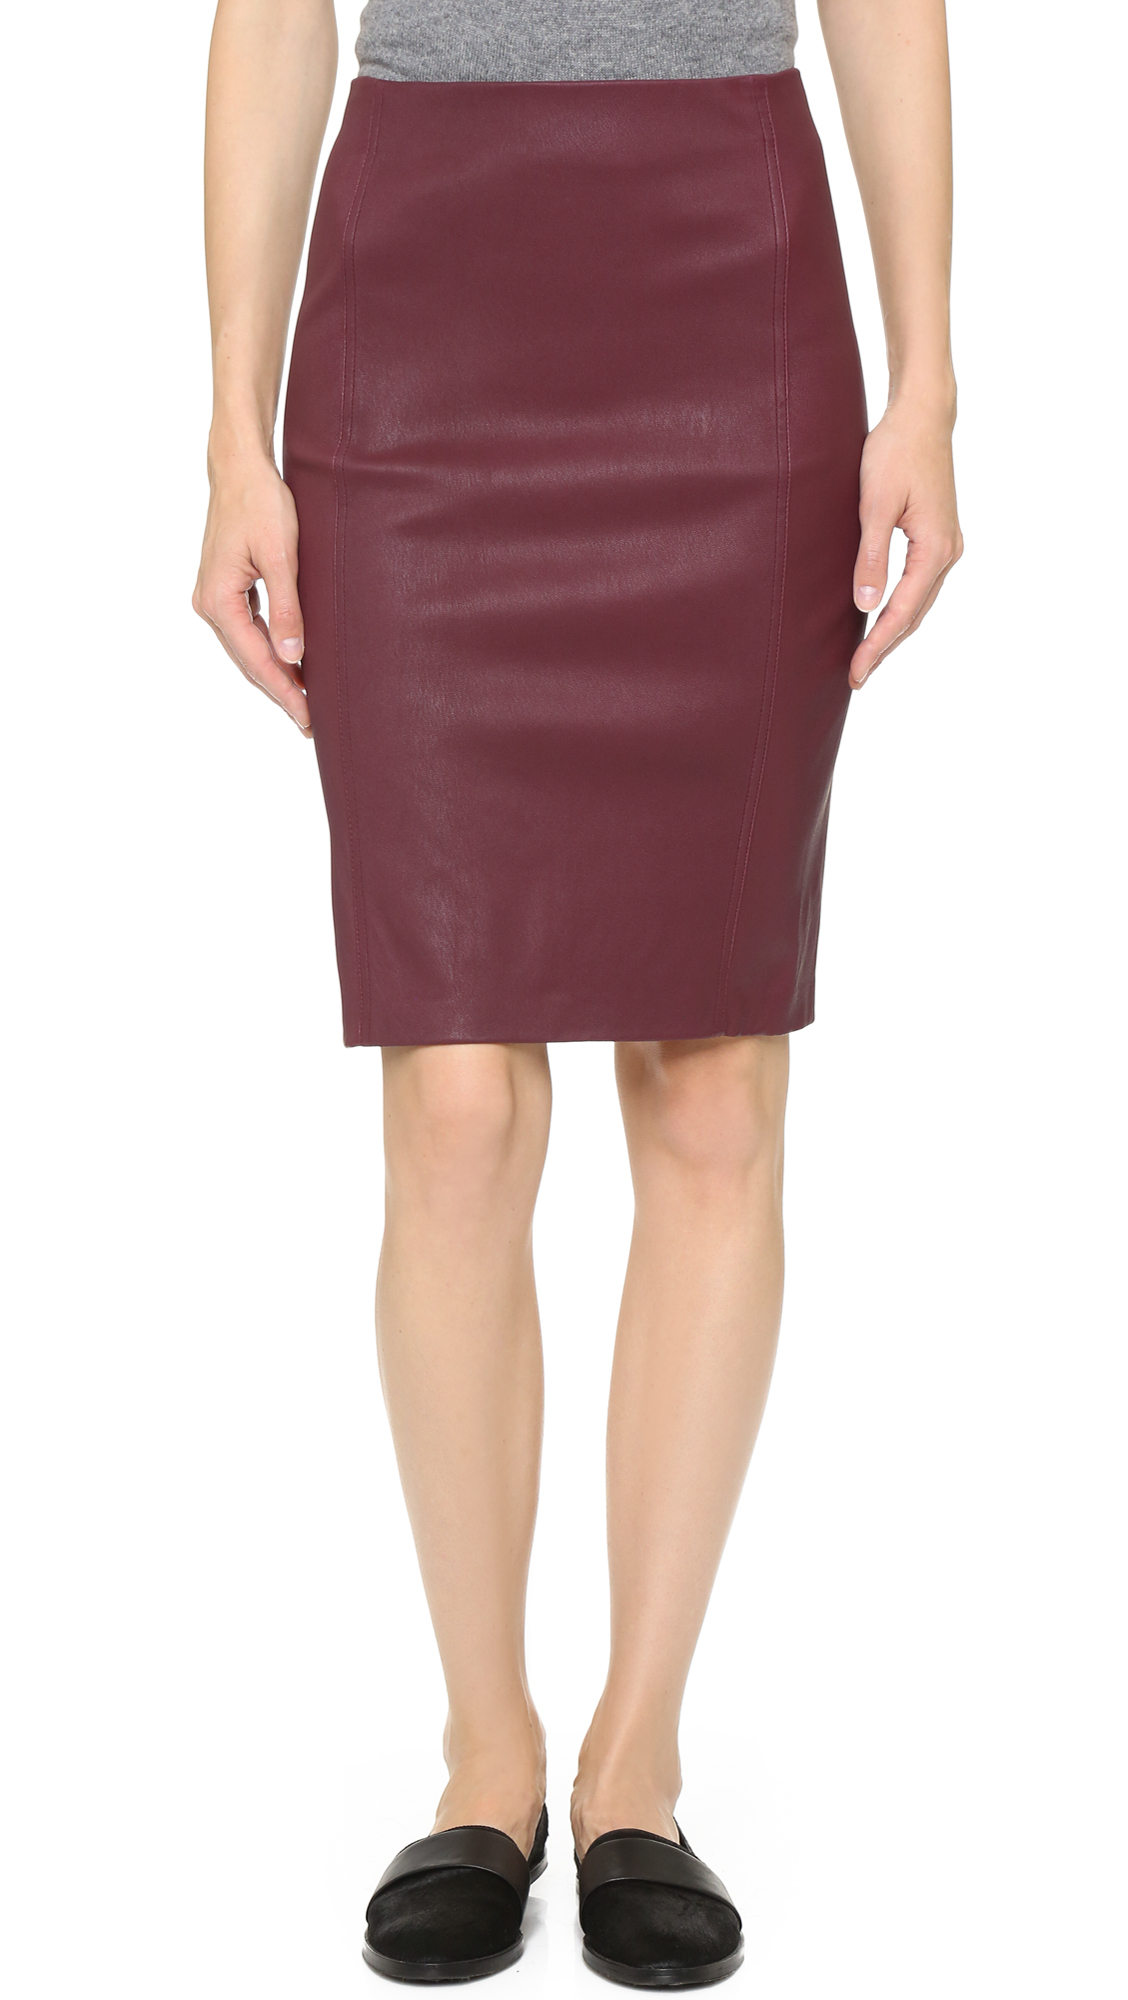 Vince Leather Pencil Skirt - Bordeaux in Purple | Lyst